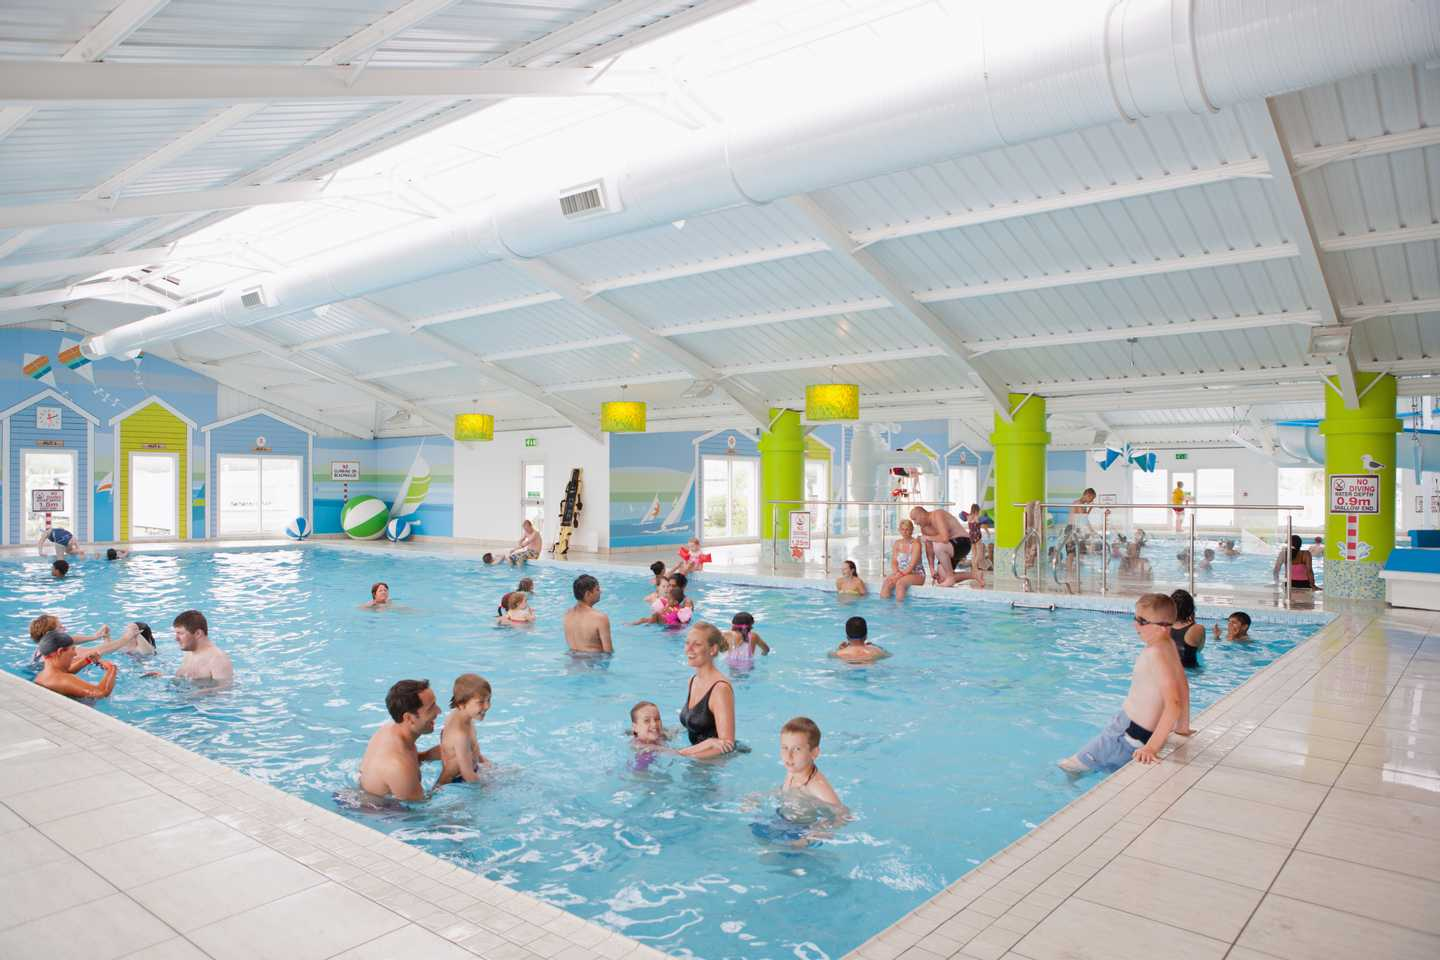 Lots of families playing in our heated indoor pool